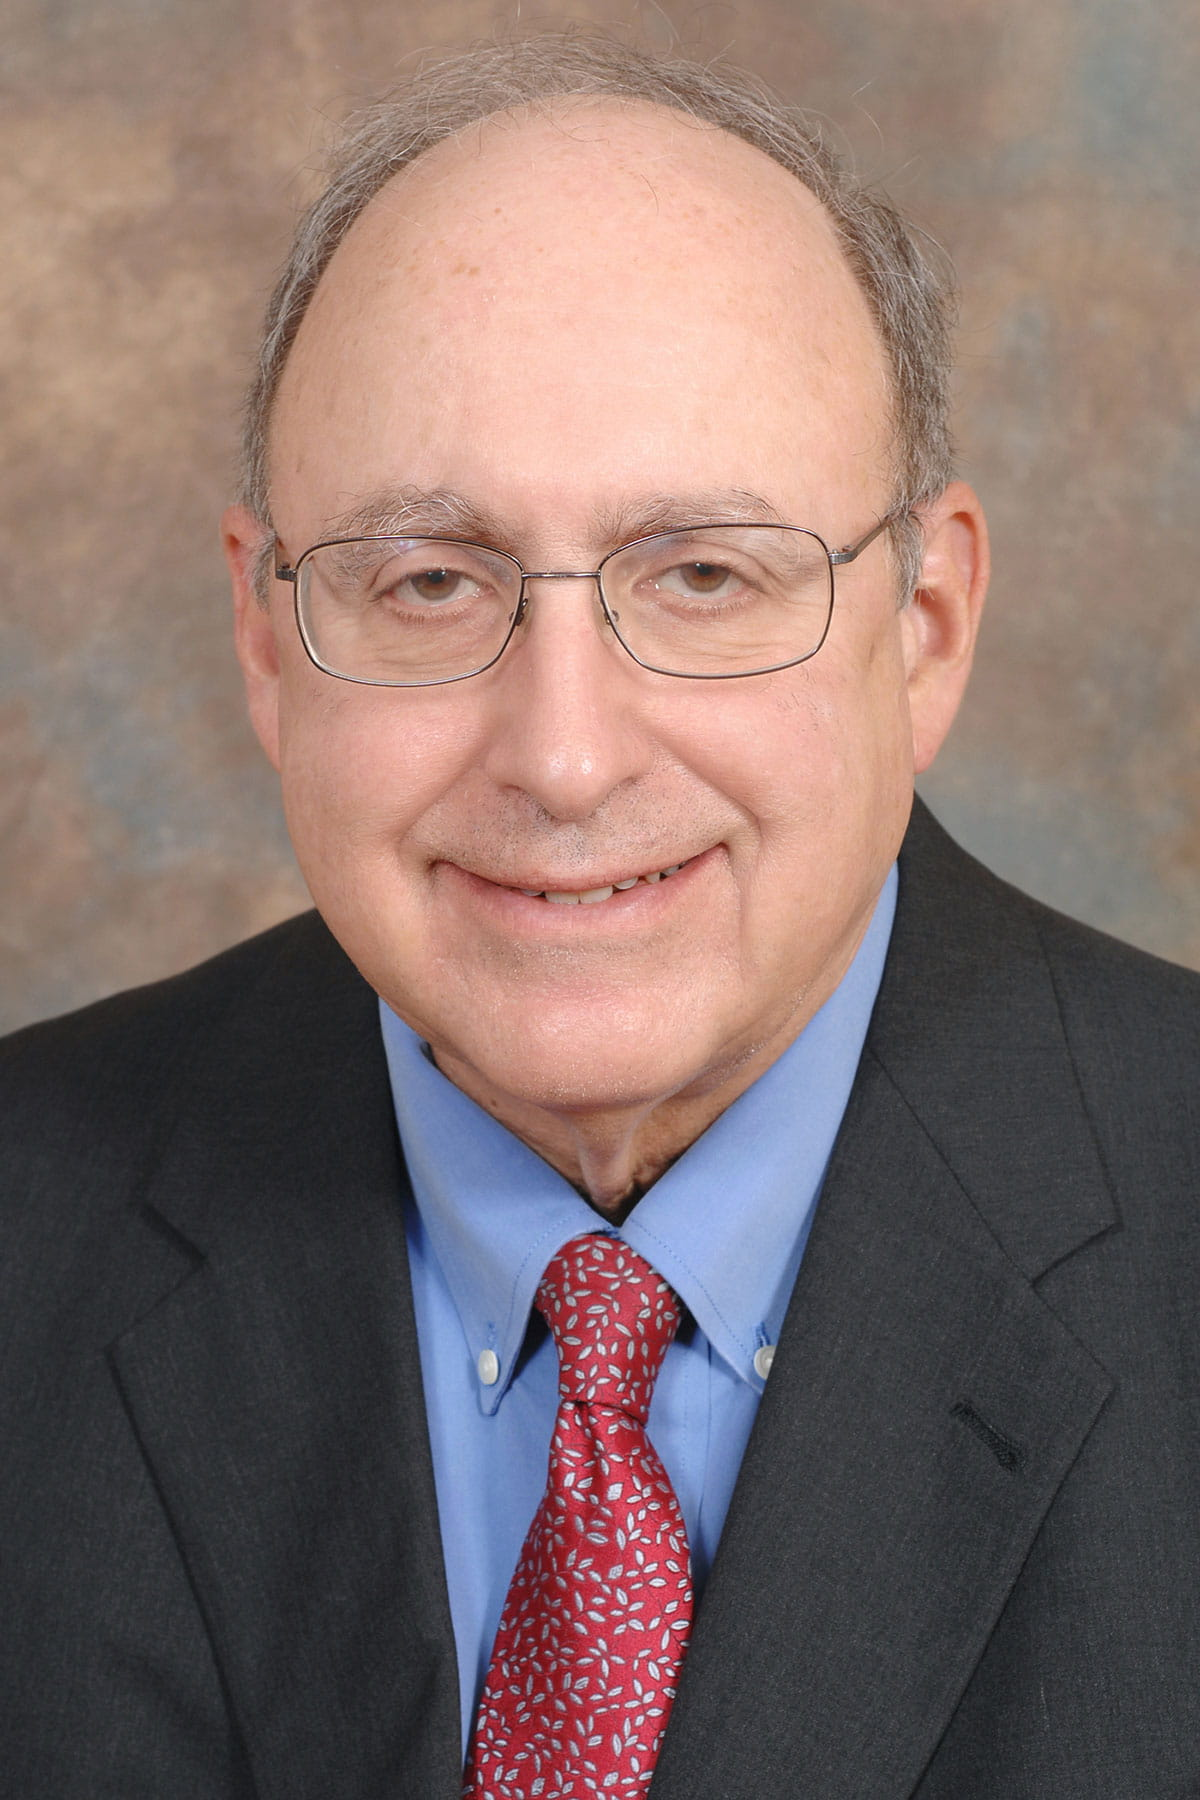 A Photo Of Michael Gelfand